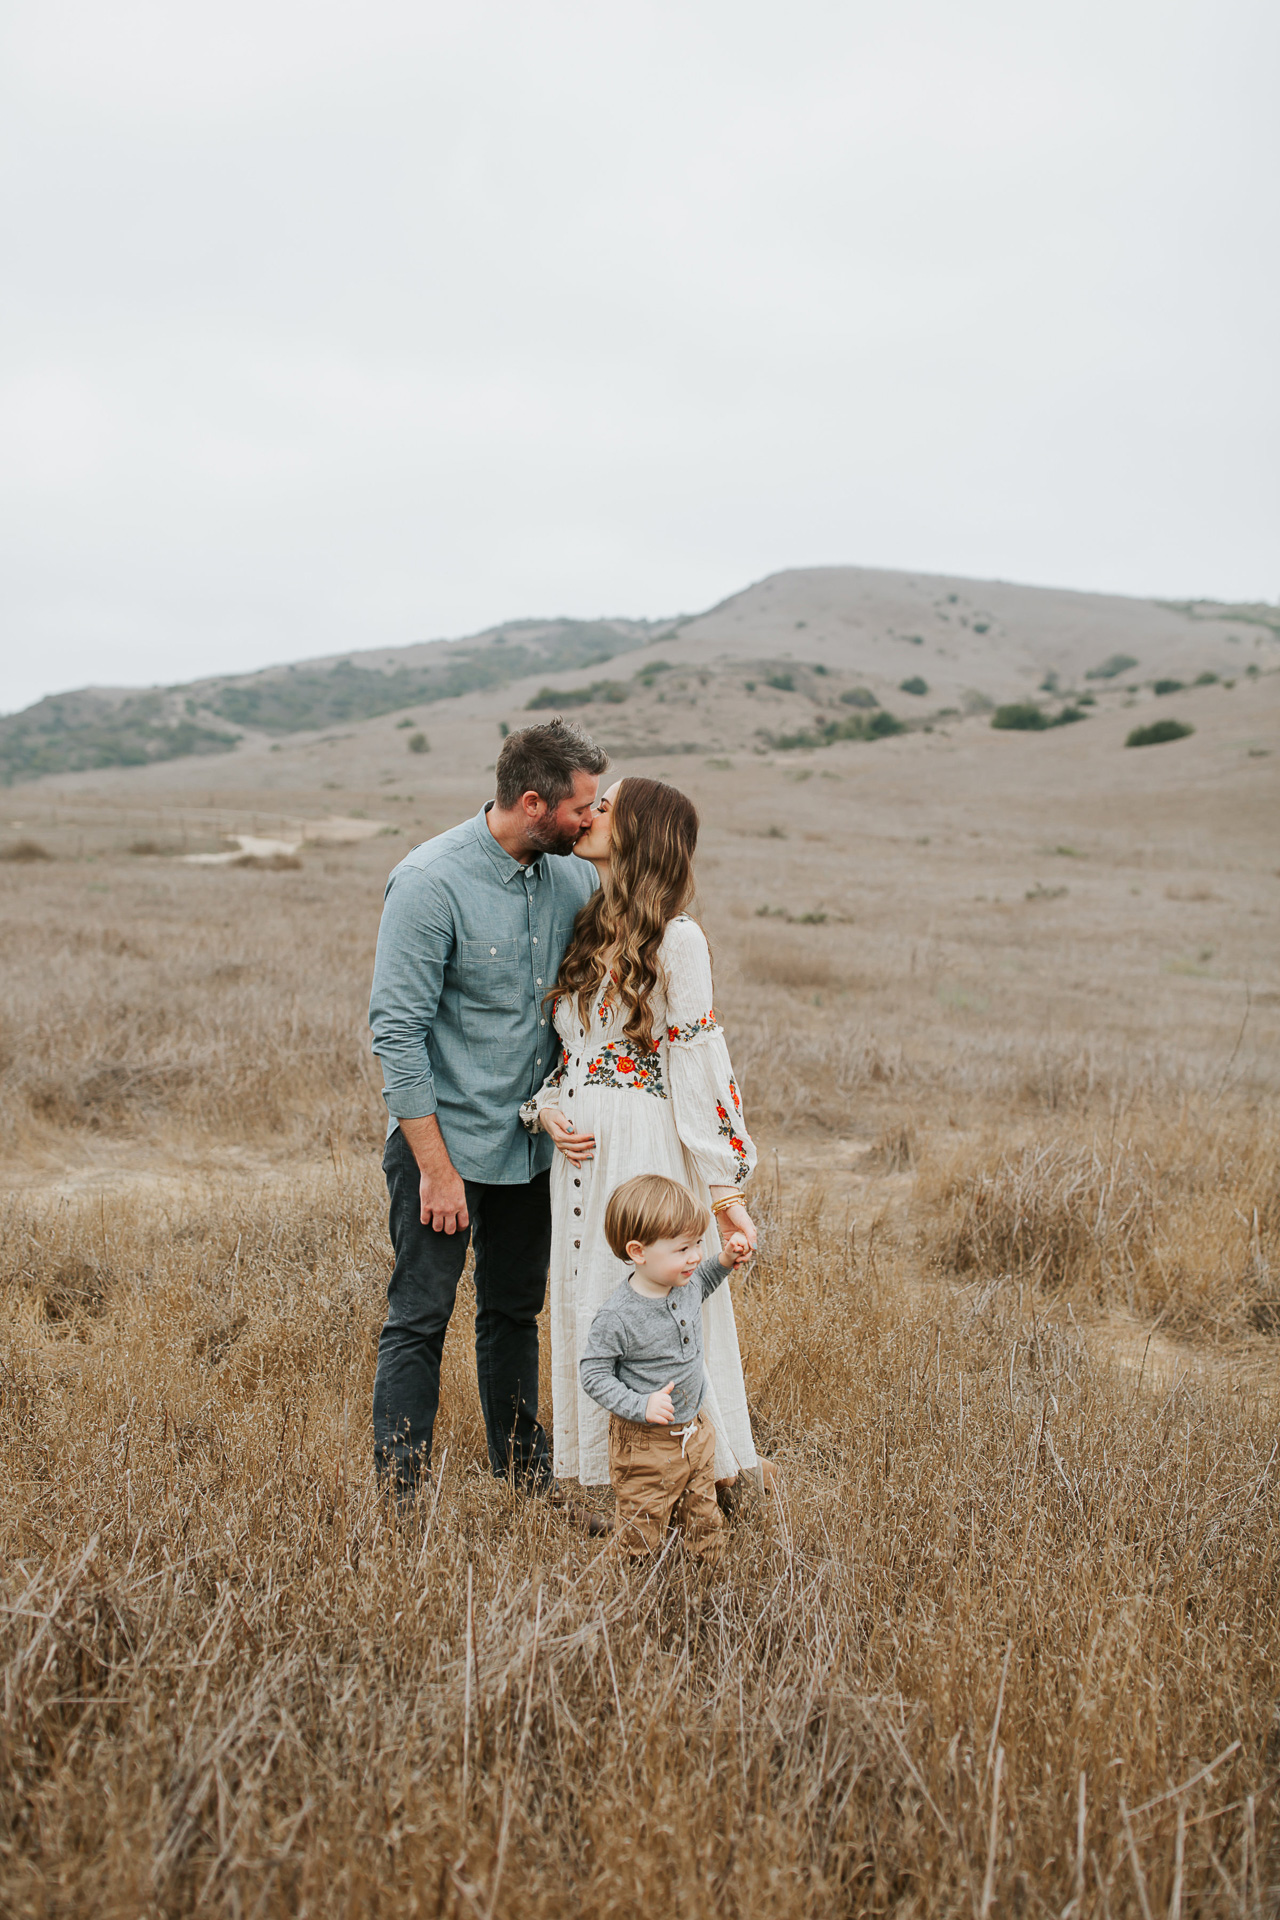 How to take a good family portrait. | M Loves M @marmar